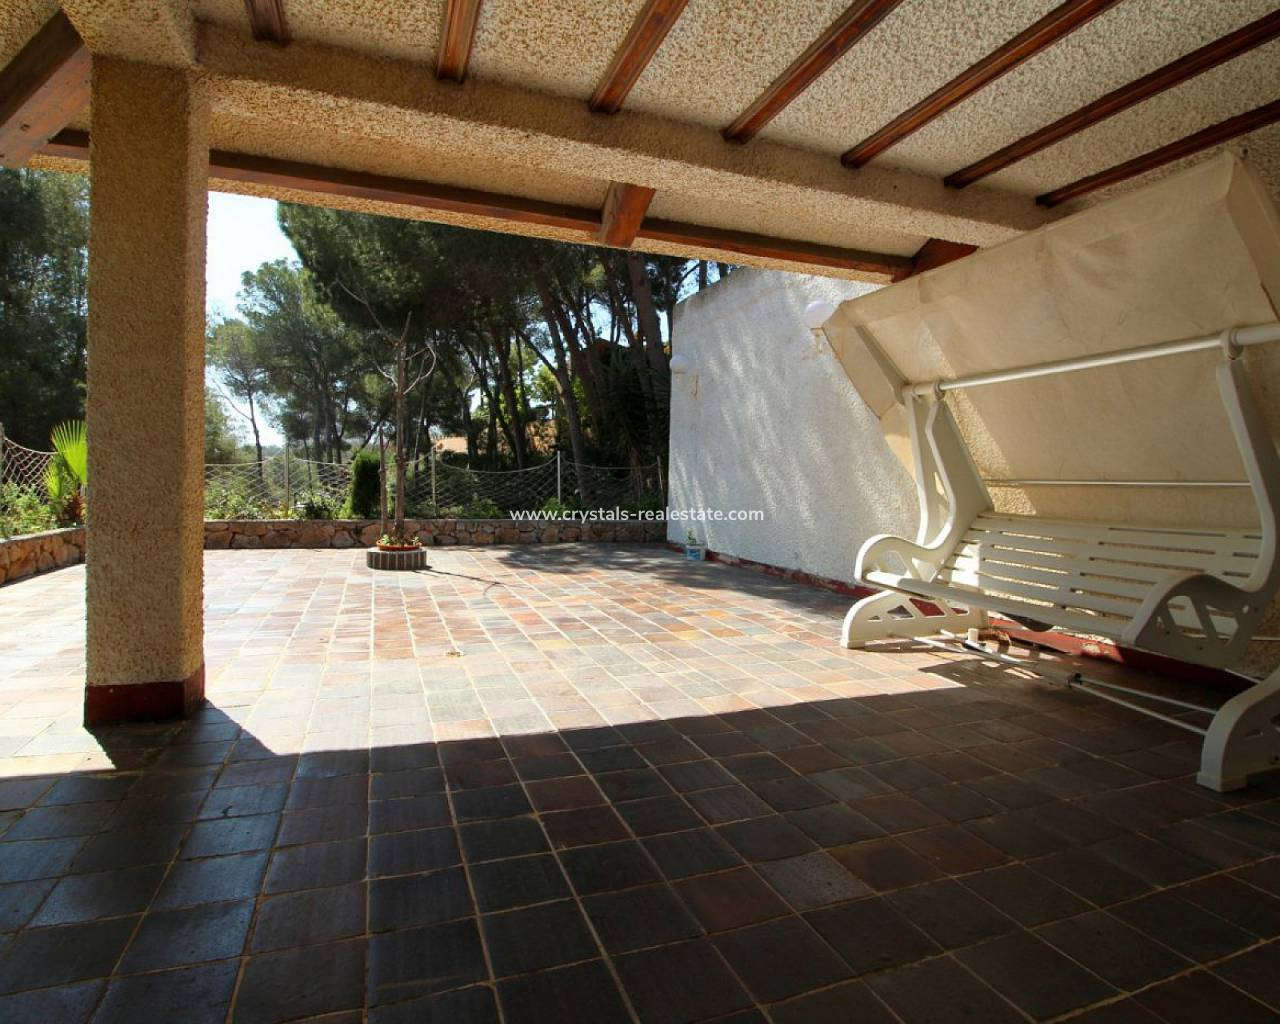 Venta - Detached Villa - Campoamor